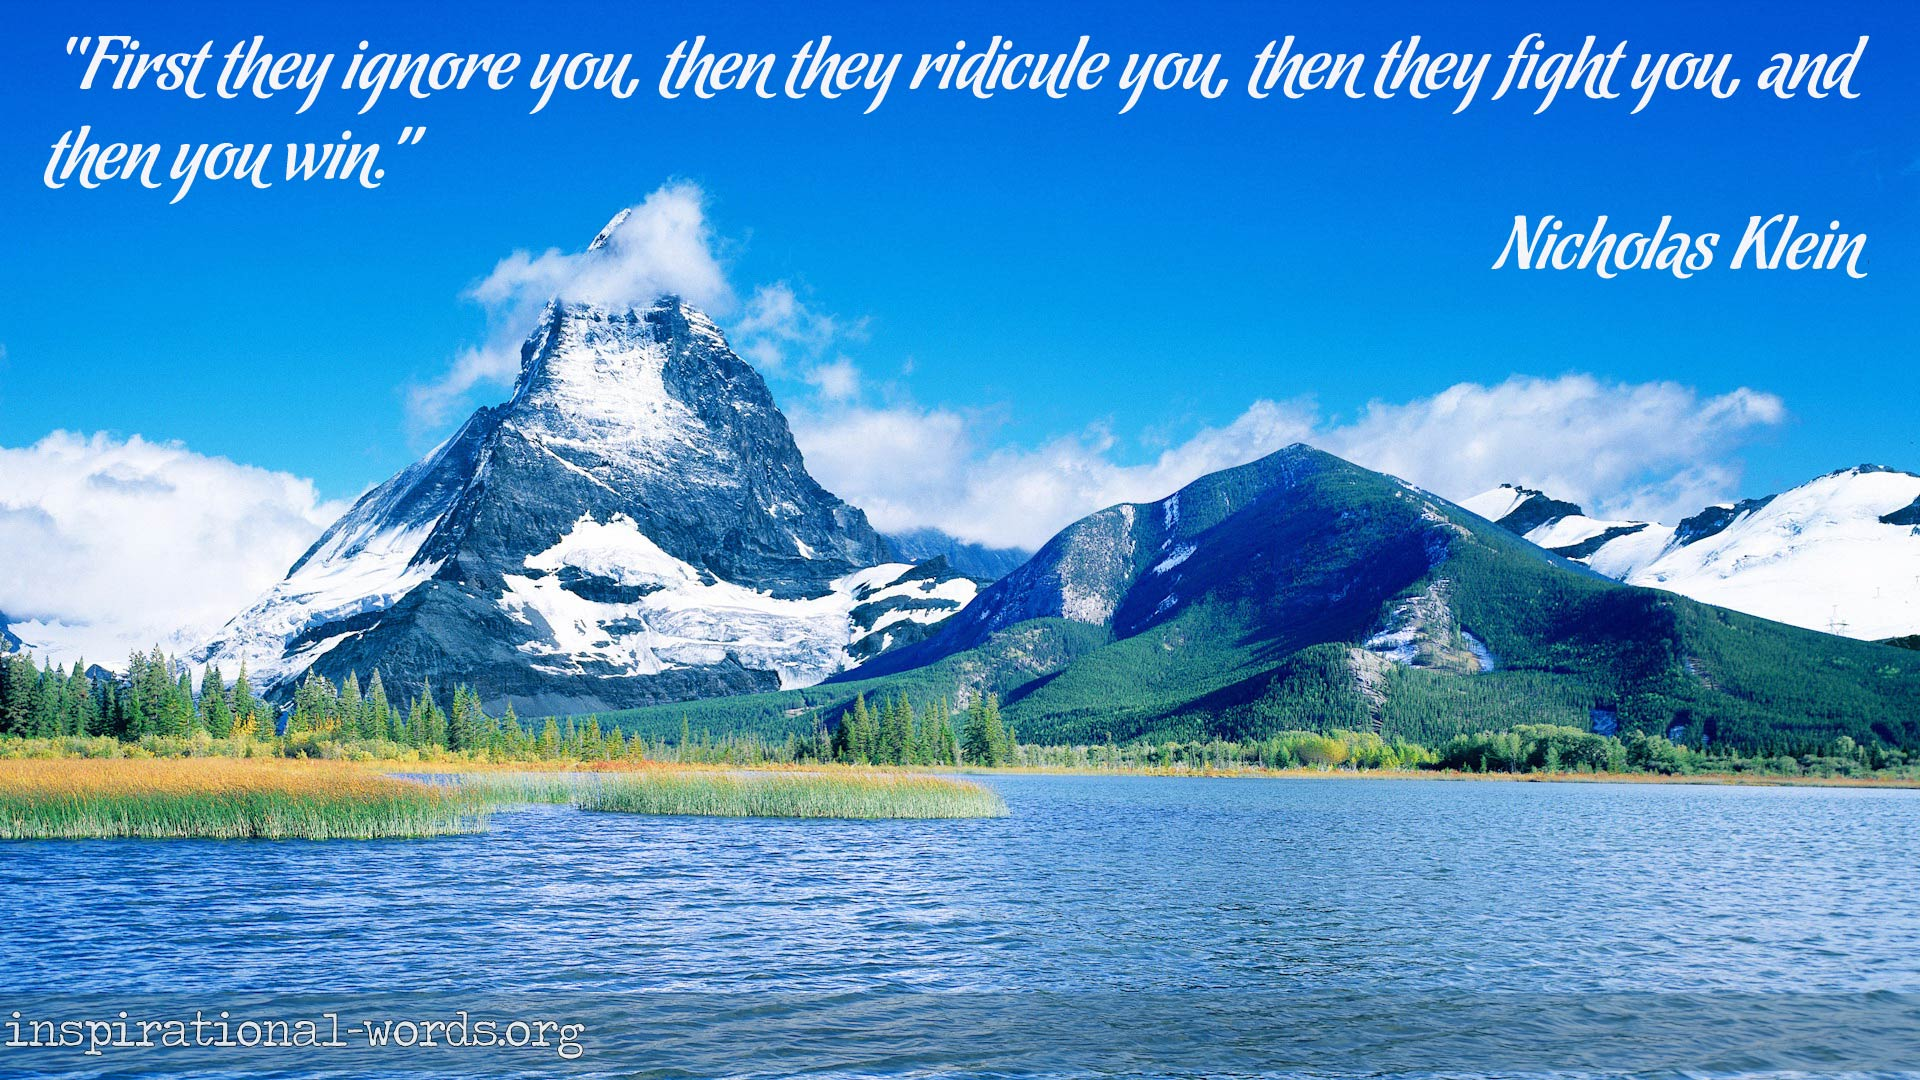 Inspirational Wallpaper Quote by Nicholas Klein